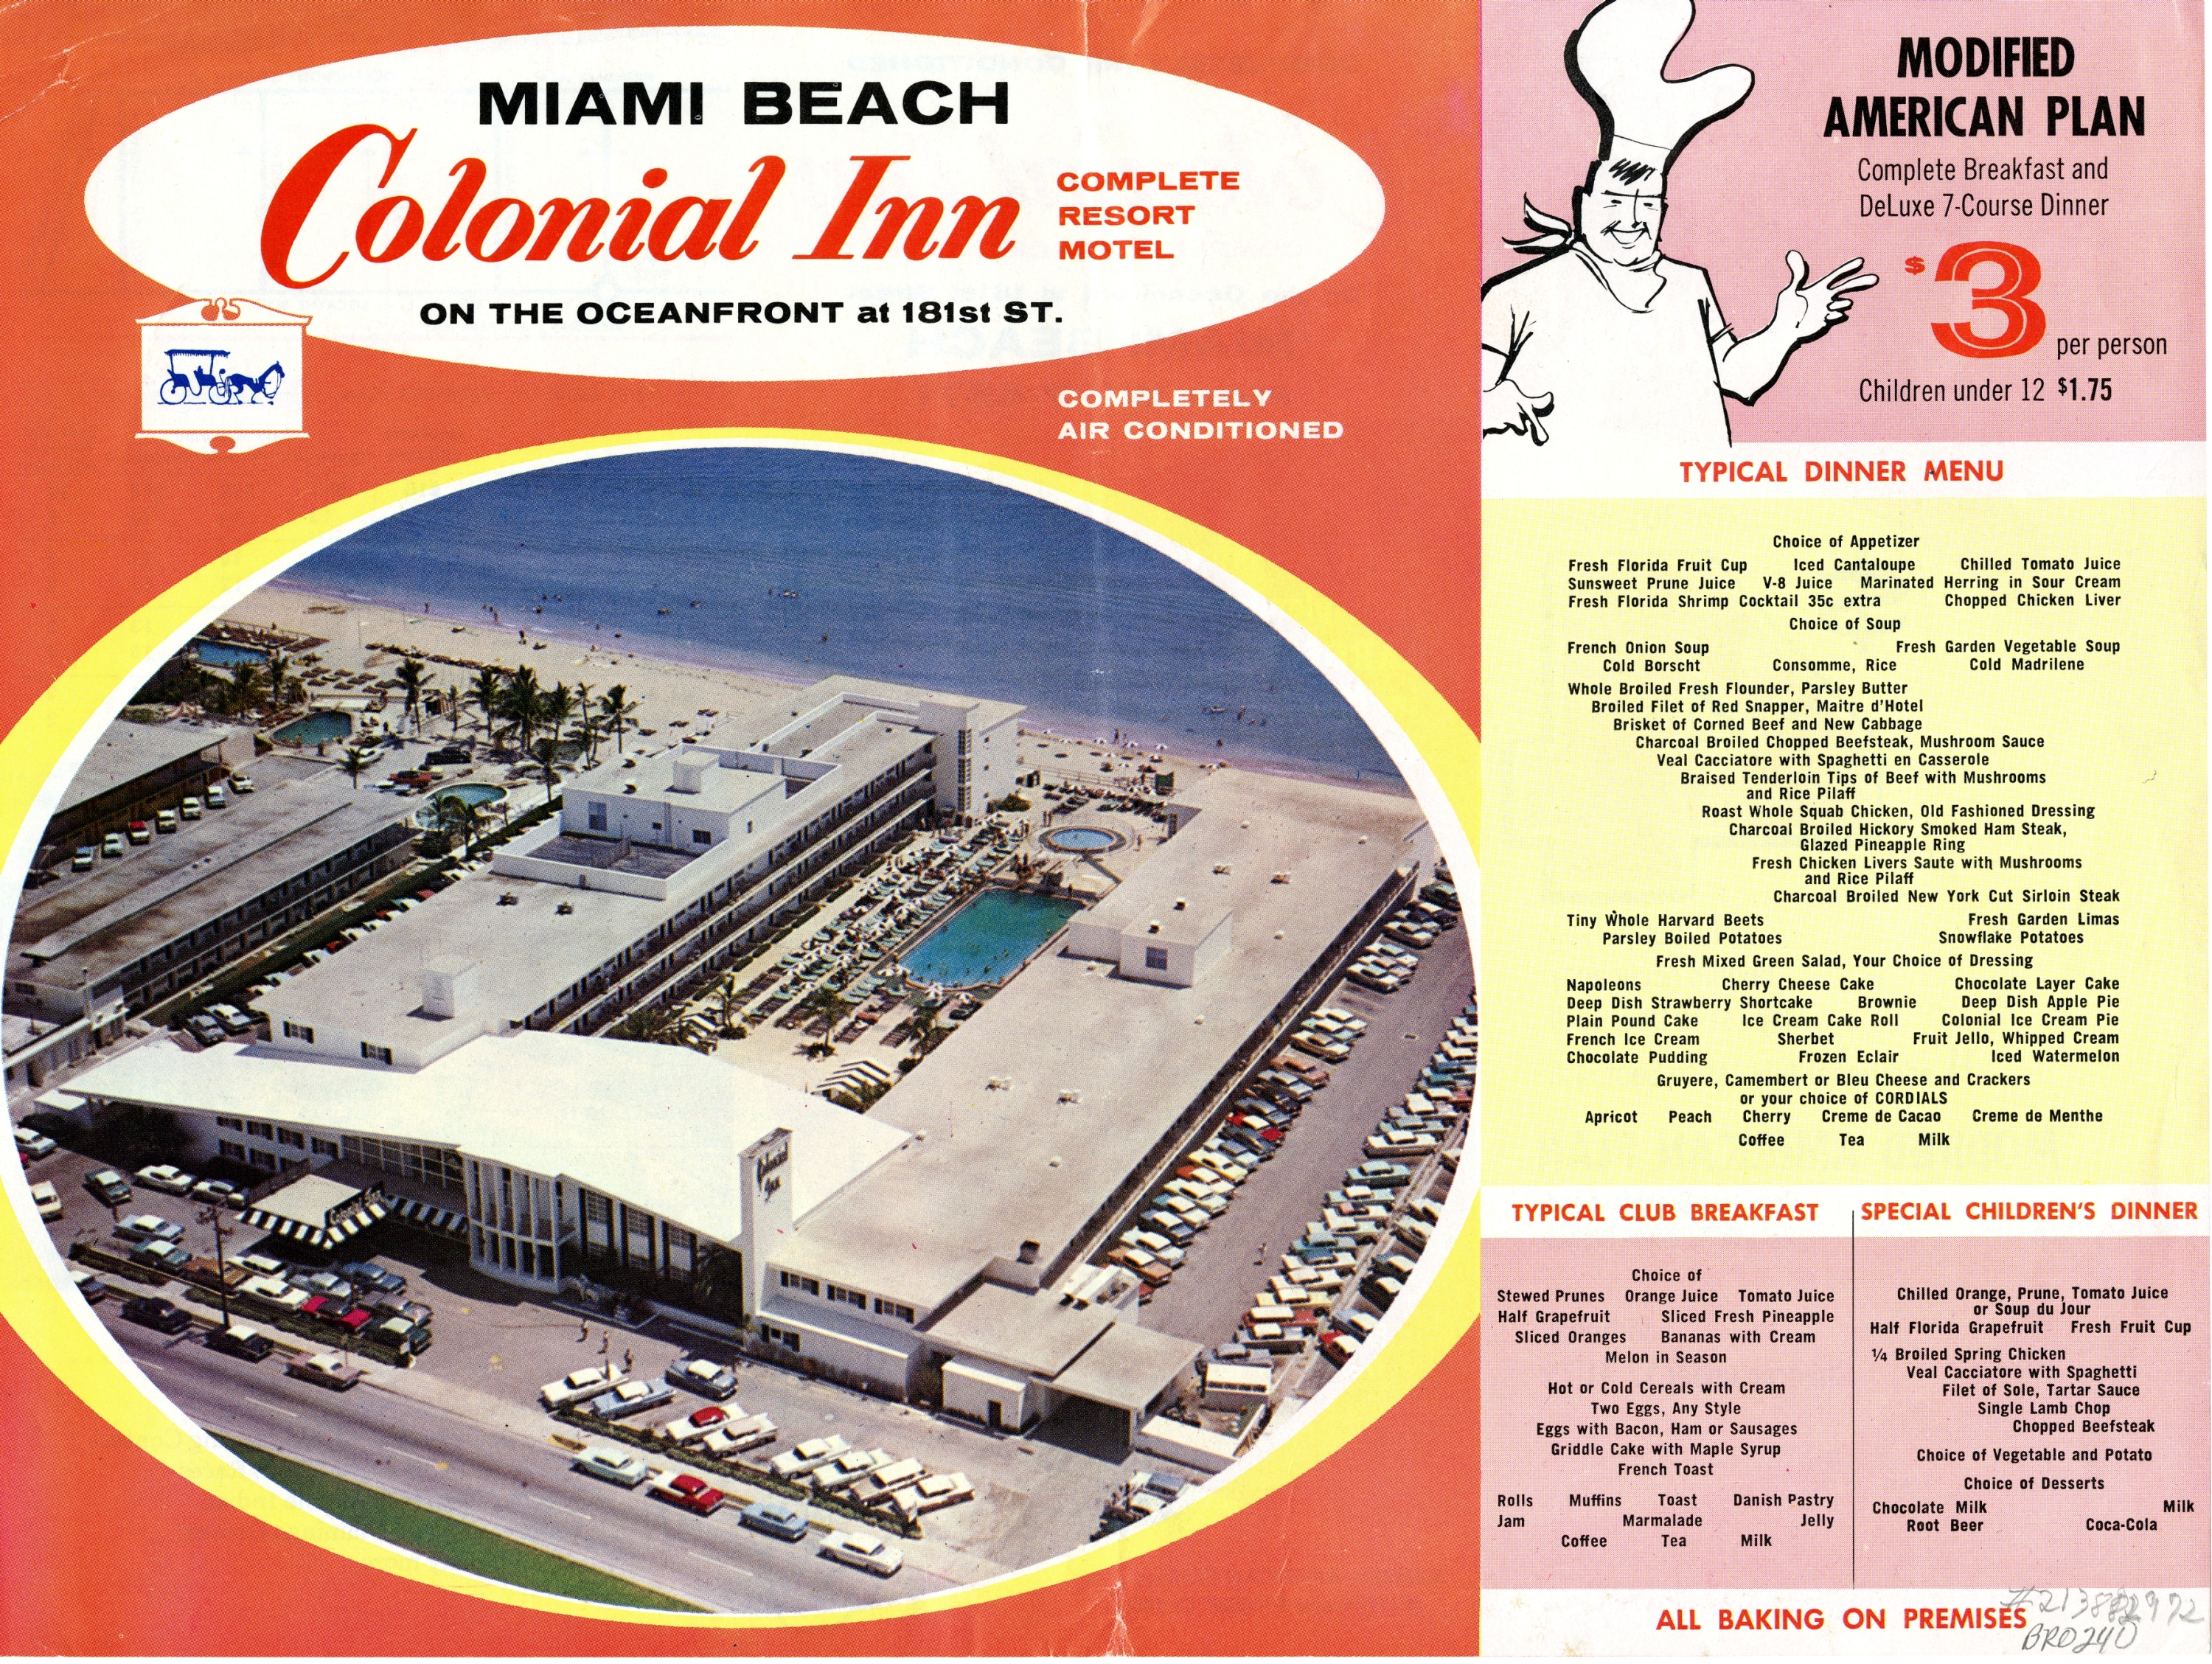 Colonial Inn Resort Motel, Miami Beach, Florida.